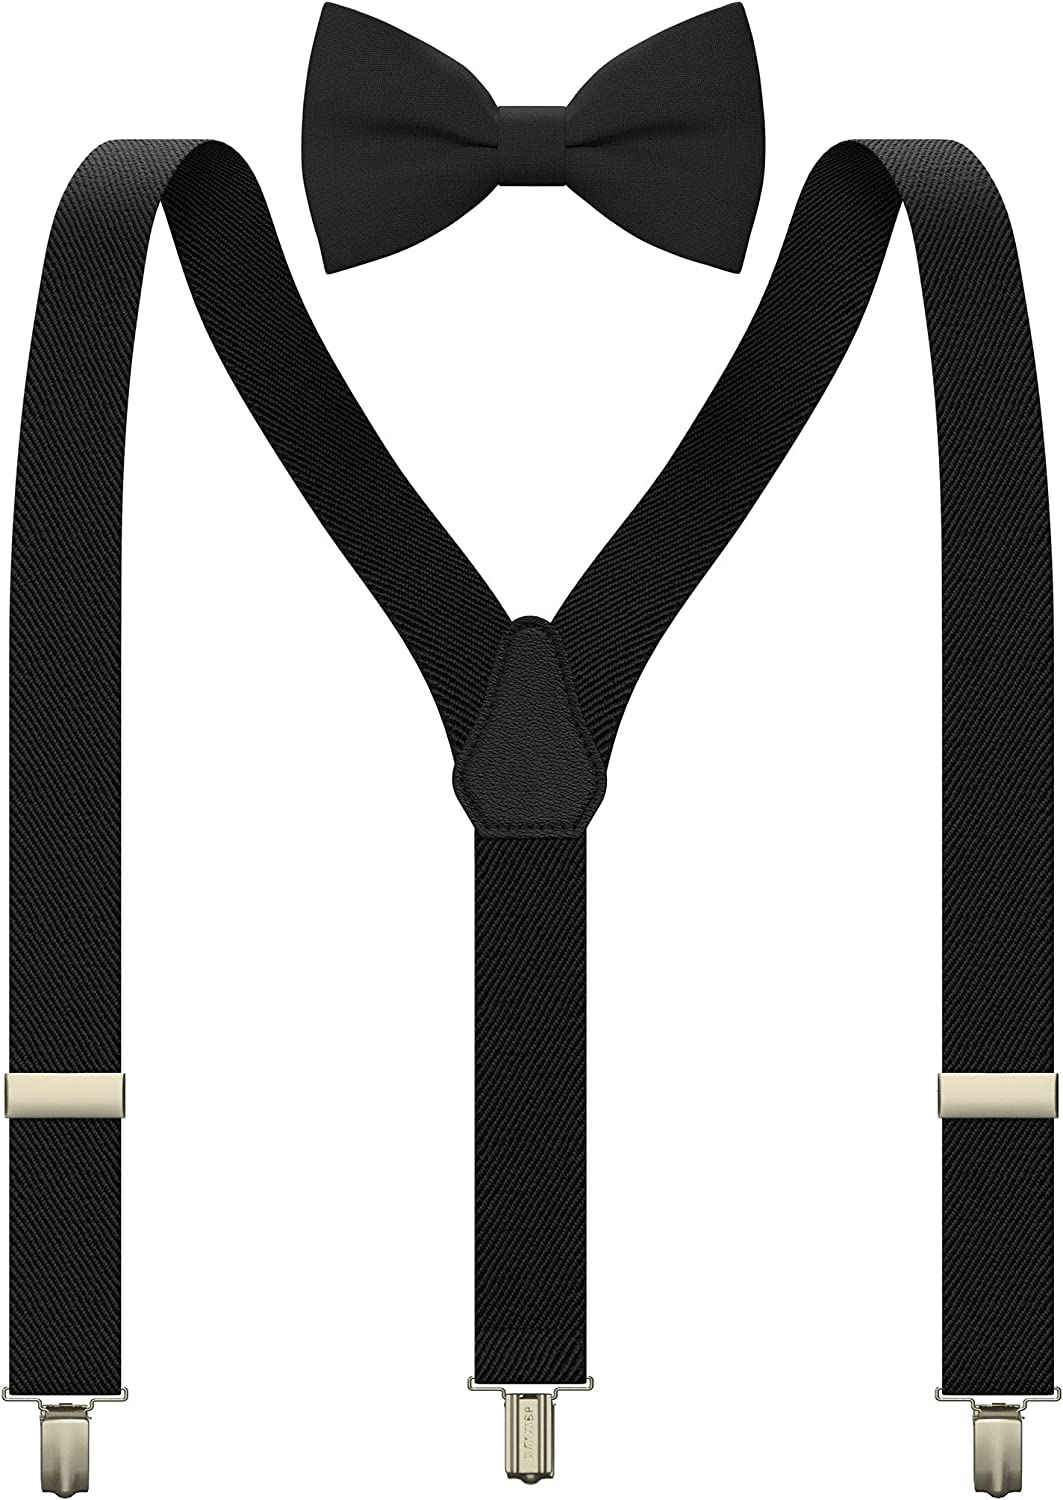 Kids Suspenders Set with a bow tie for babies, toddlers boys girls by Bow Tie House